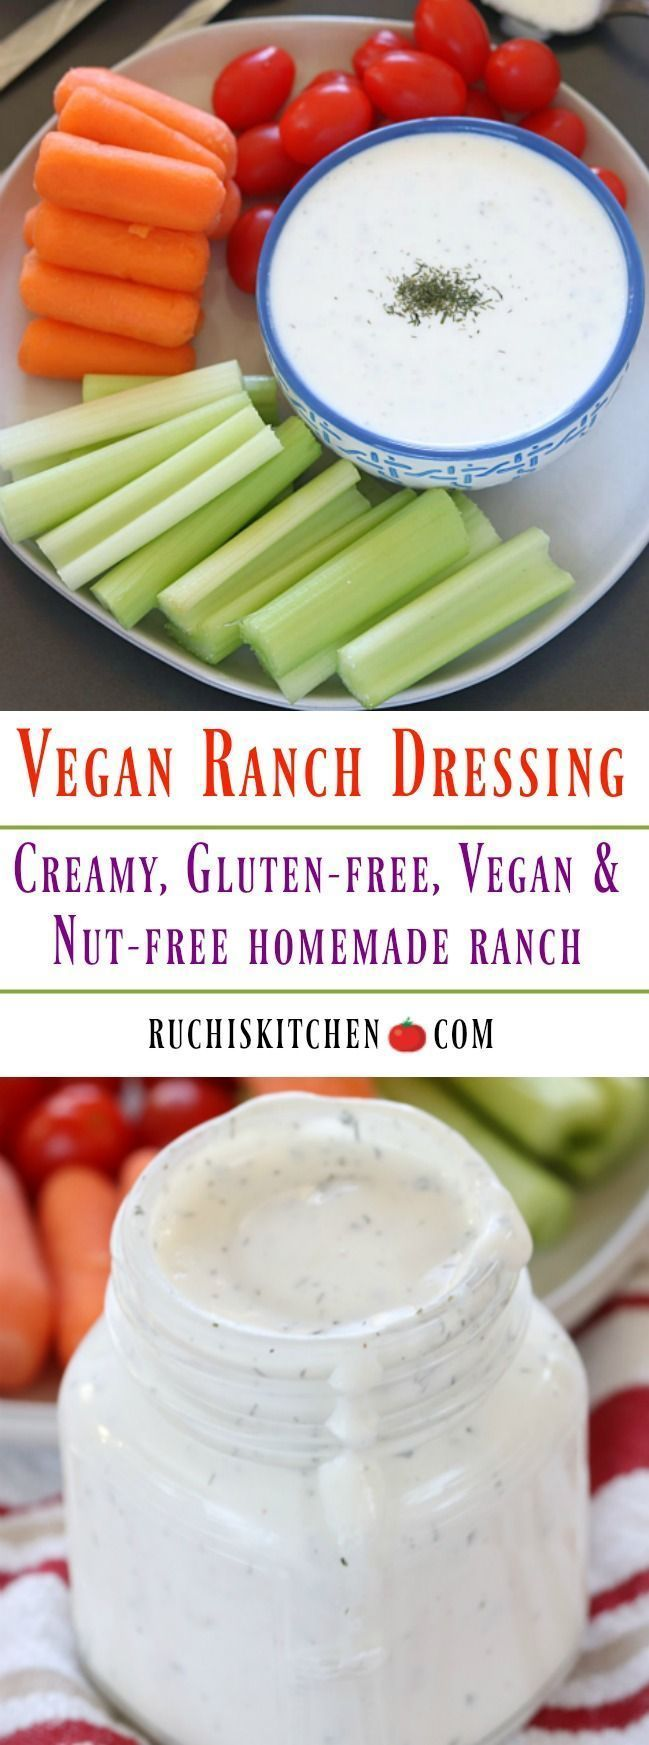 HomemadeVegan Ranch Dressing made with a handful of ingredients. So creamy and deliciousthatit will soon become a staple dressing in your kitchen. Besides that,it's Gluten-free, Vegan, and Nut-free! #vegan #glutenfree #ranchdressing #veganranch #homemadedressing #dipsandspreads #vegandressing